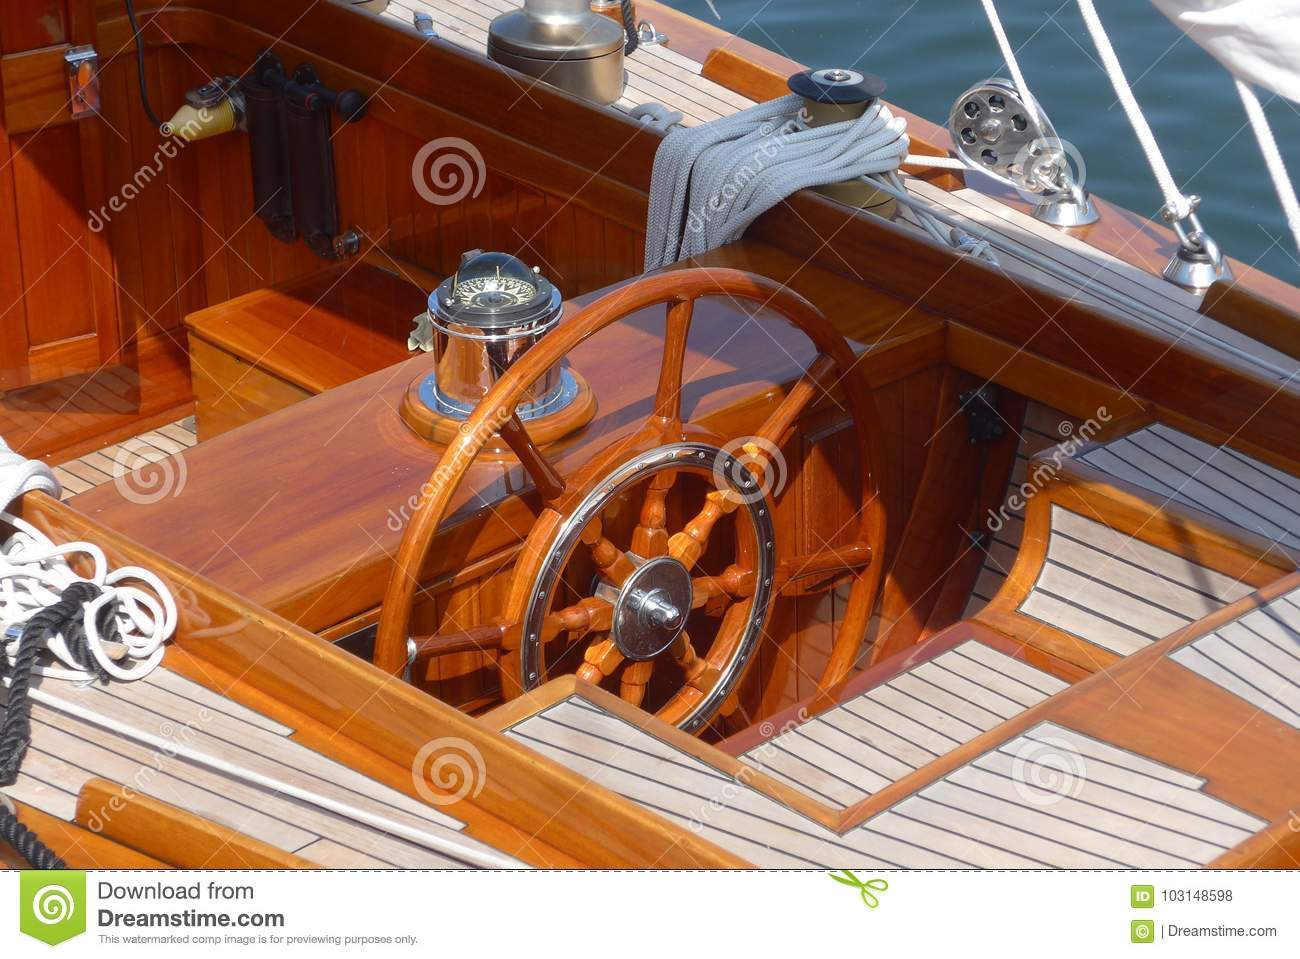 Detail photos of a sailing yacht, steering wheel, teak deck and compass